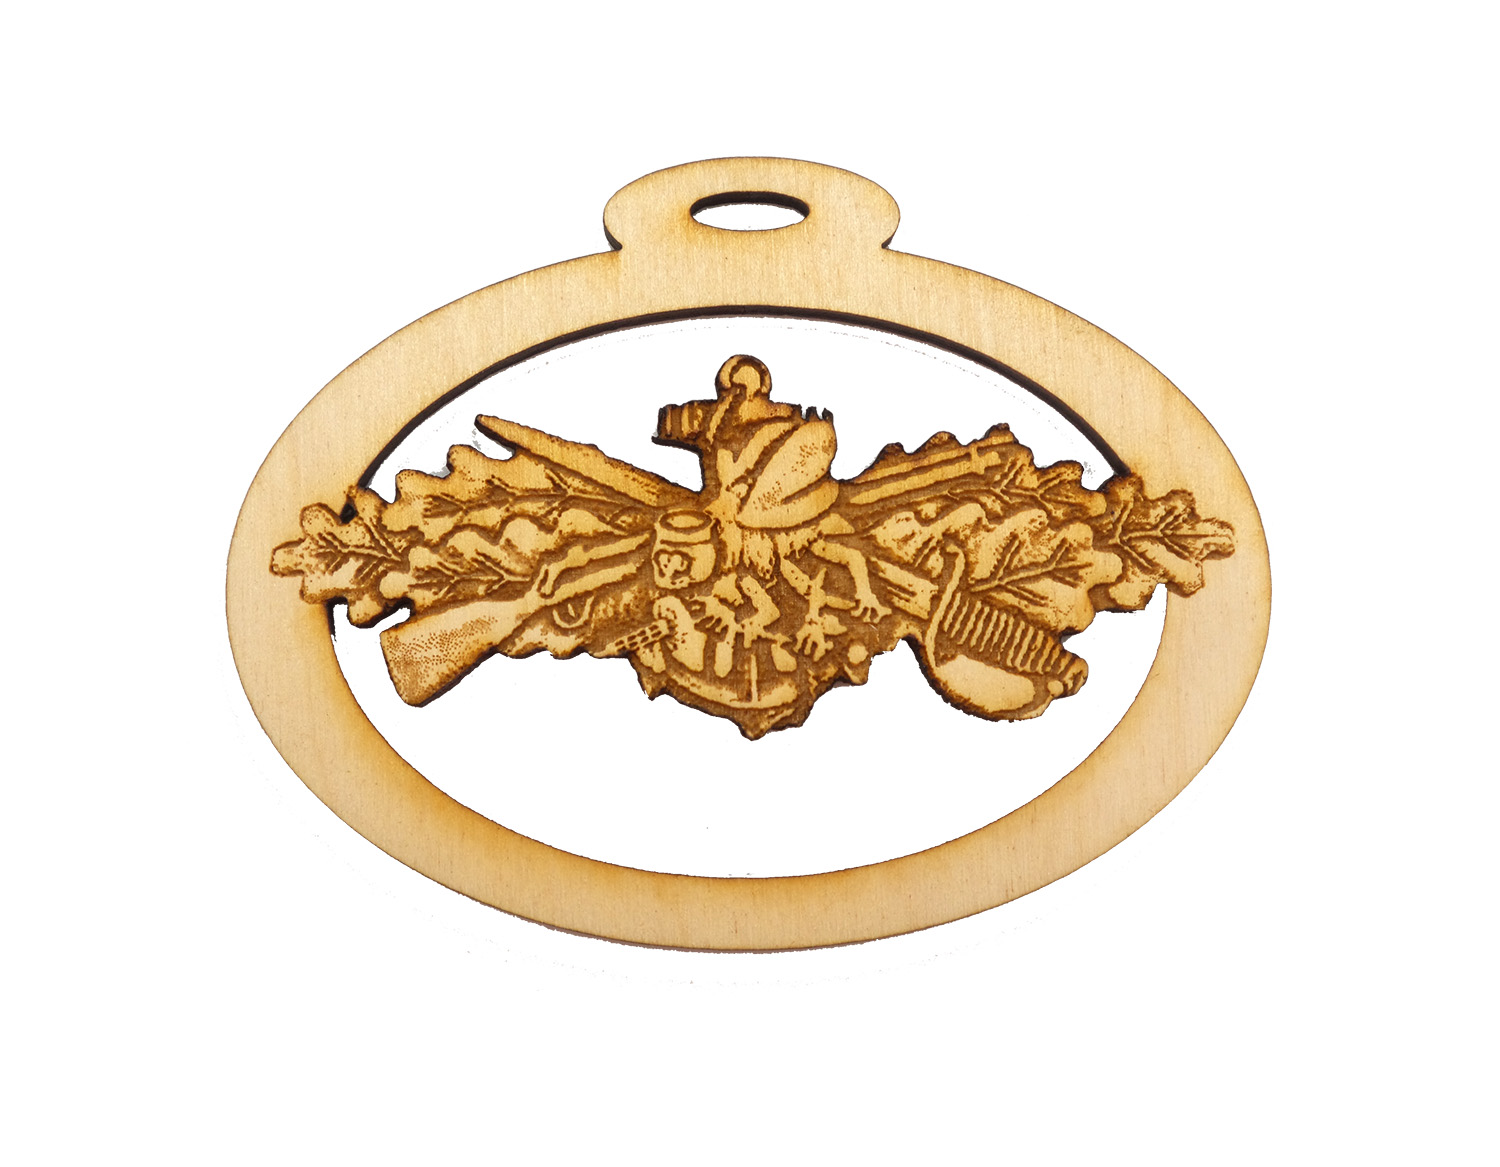 Personalized Navy Seabee Warfare Ornament